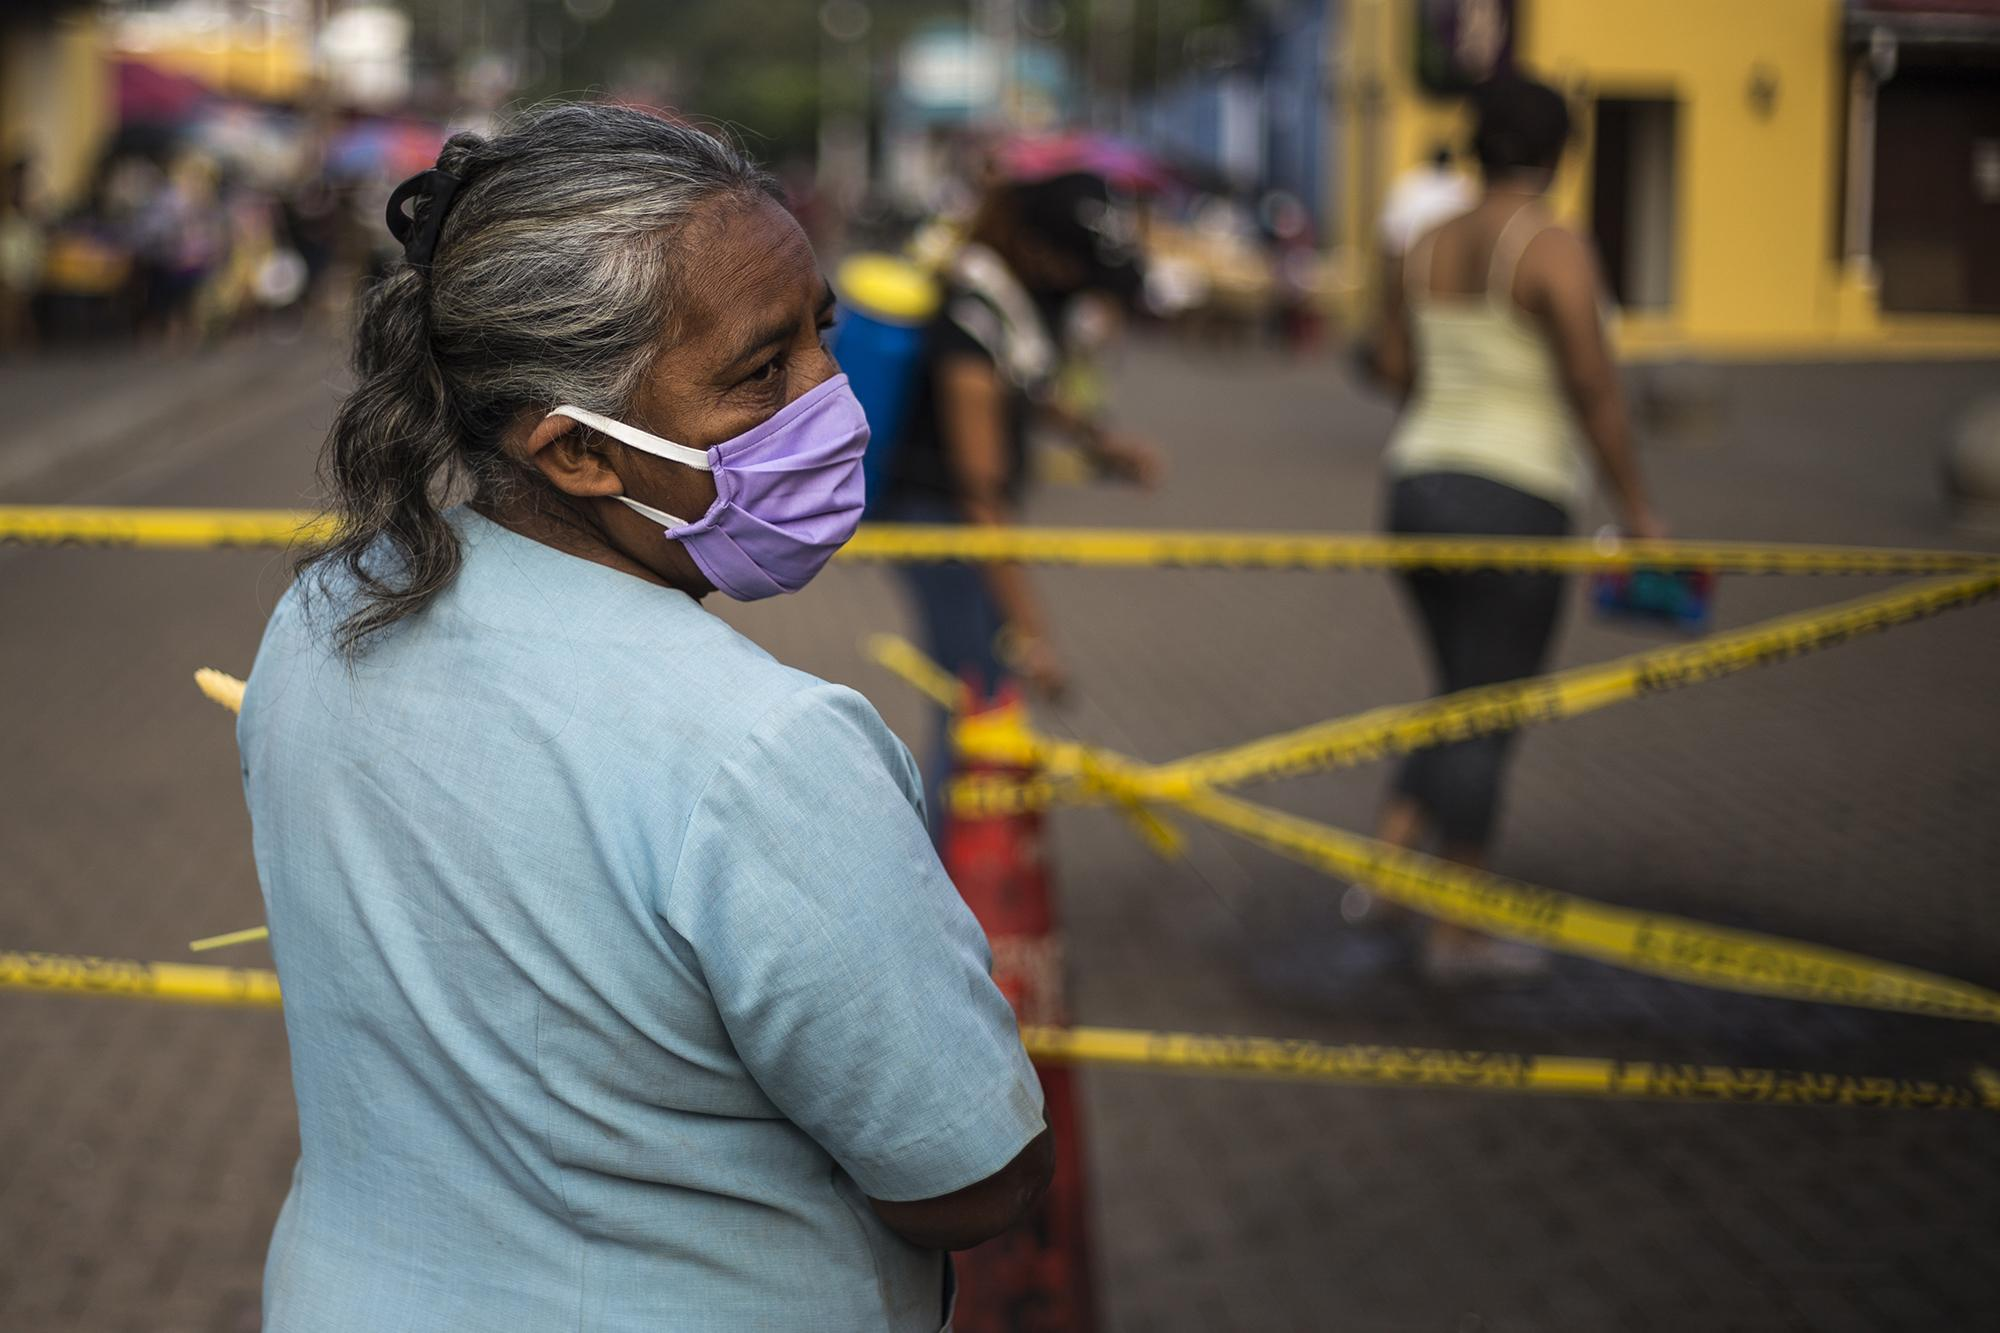 In addition to shielding themselves from the novel coronavirus, women in El Salvador are weathering another pandemic: acts of gender-based violence. Photo: Víctor Peña/El Faro